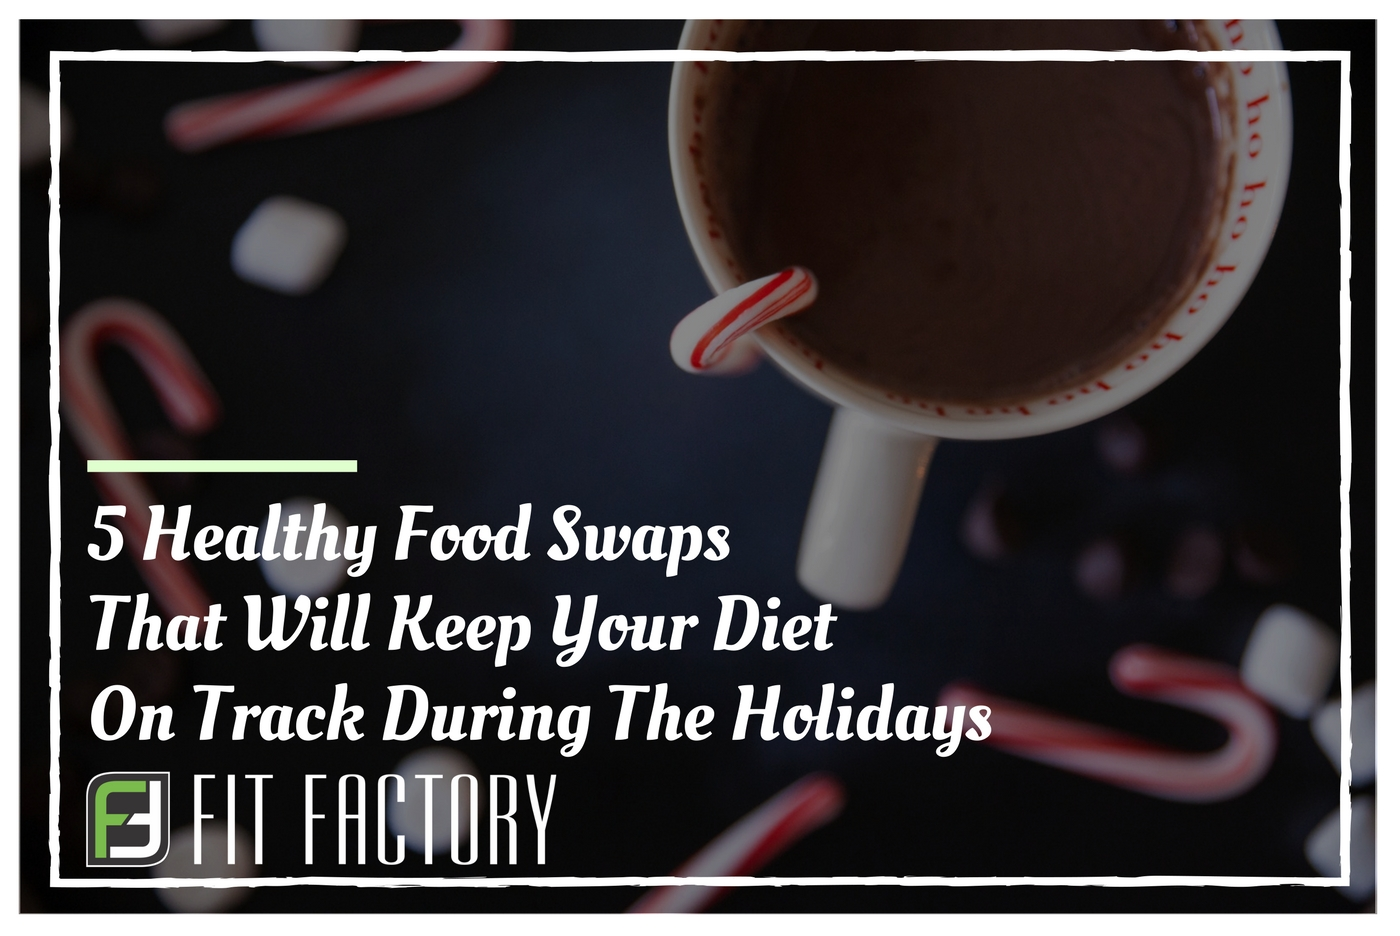 5 Healthy Food Swaps That Will Keep Your Diet on Track During the Holidays